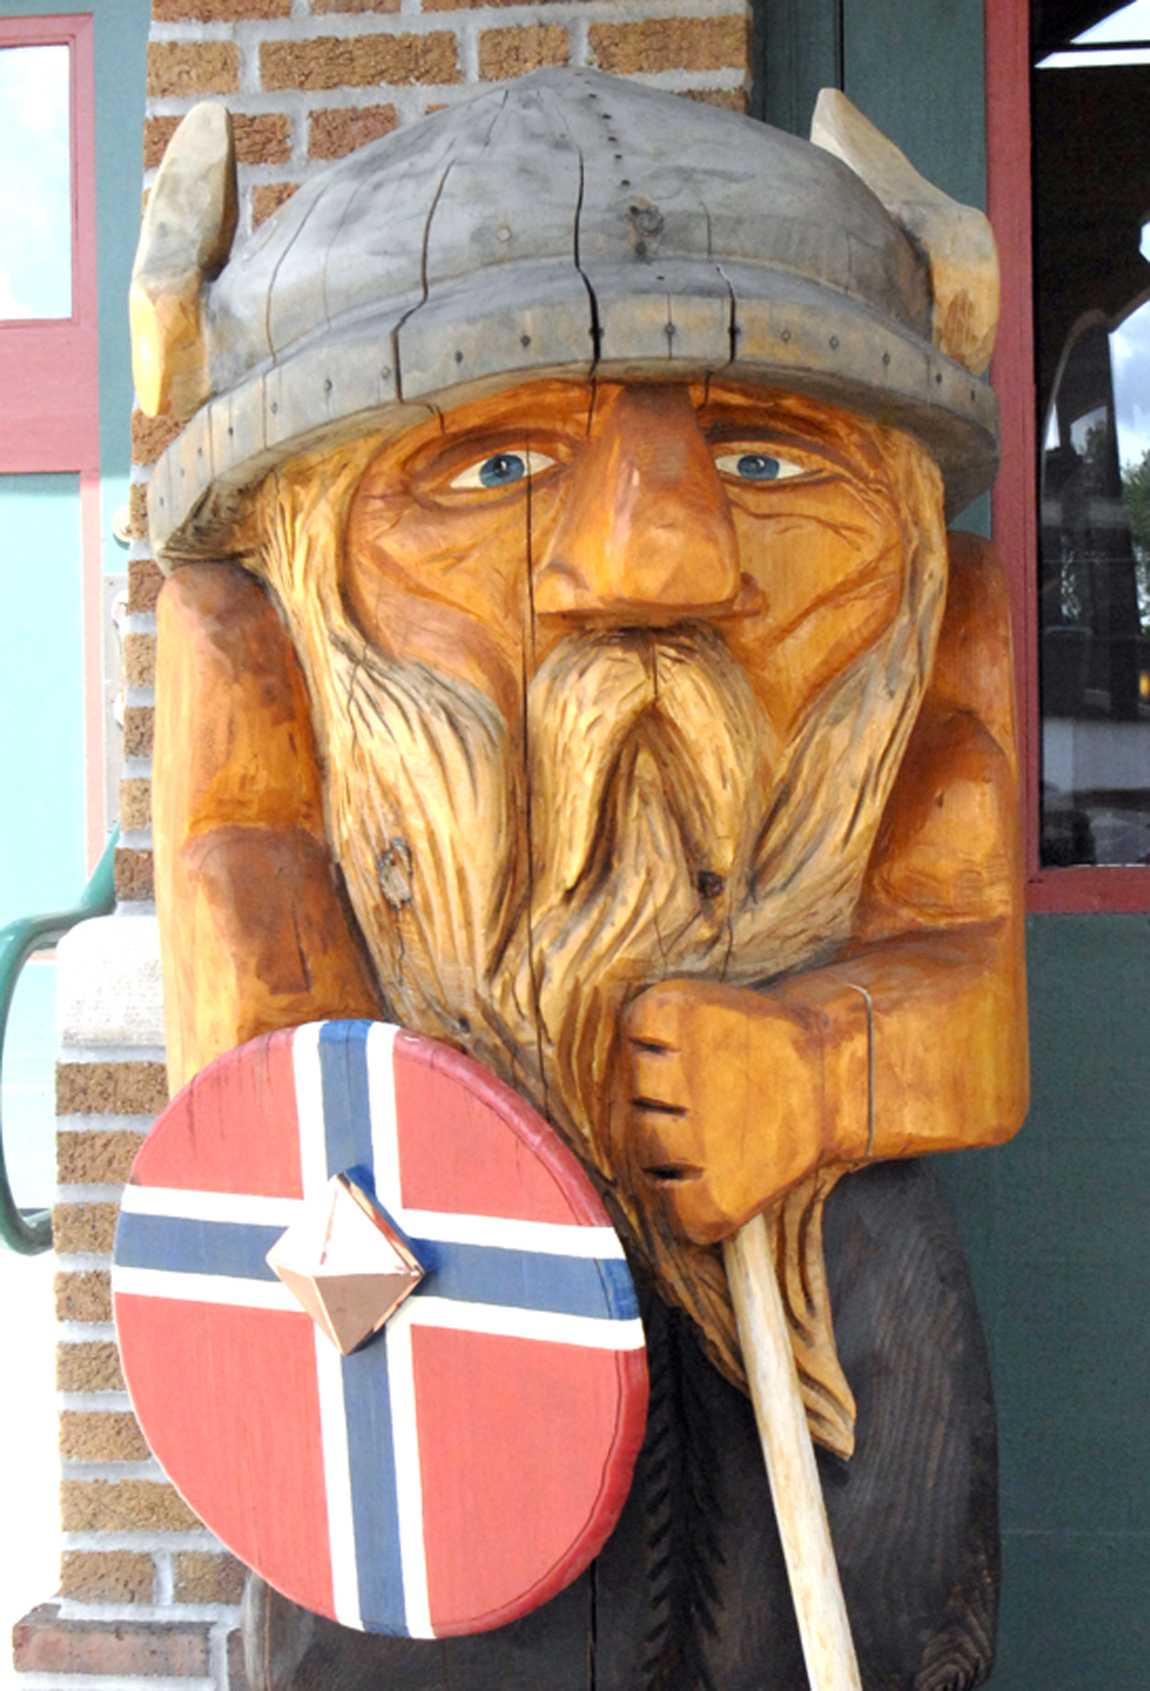 It's Norwegian Heritage Week in Thief River Falls. Numerous activities have been planned for the week. One of the unique attractions in the community is its trolls. Two more are expected to be added soon.